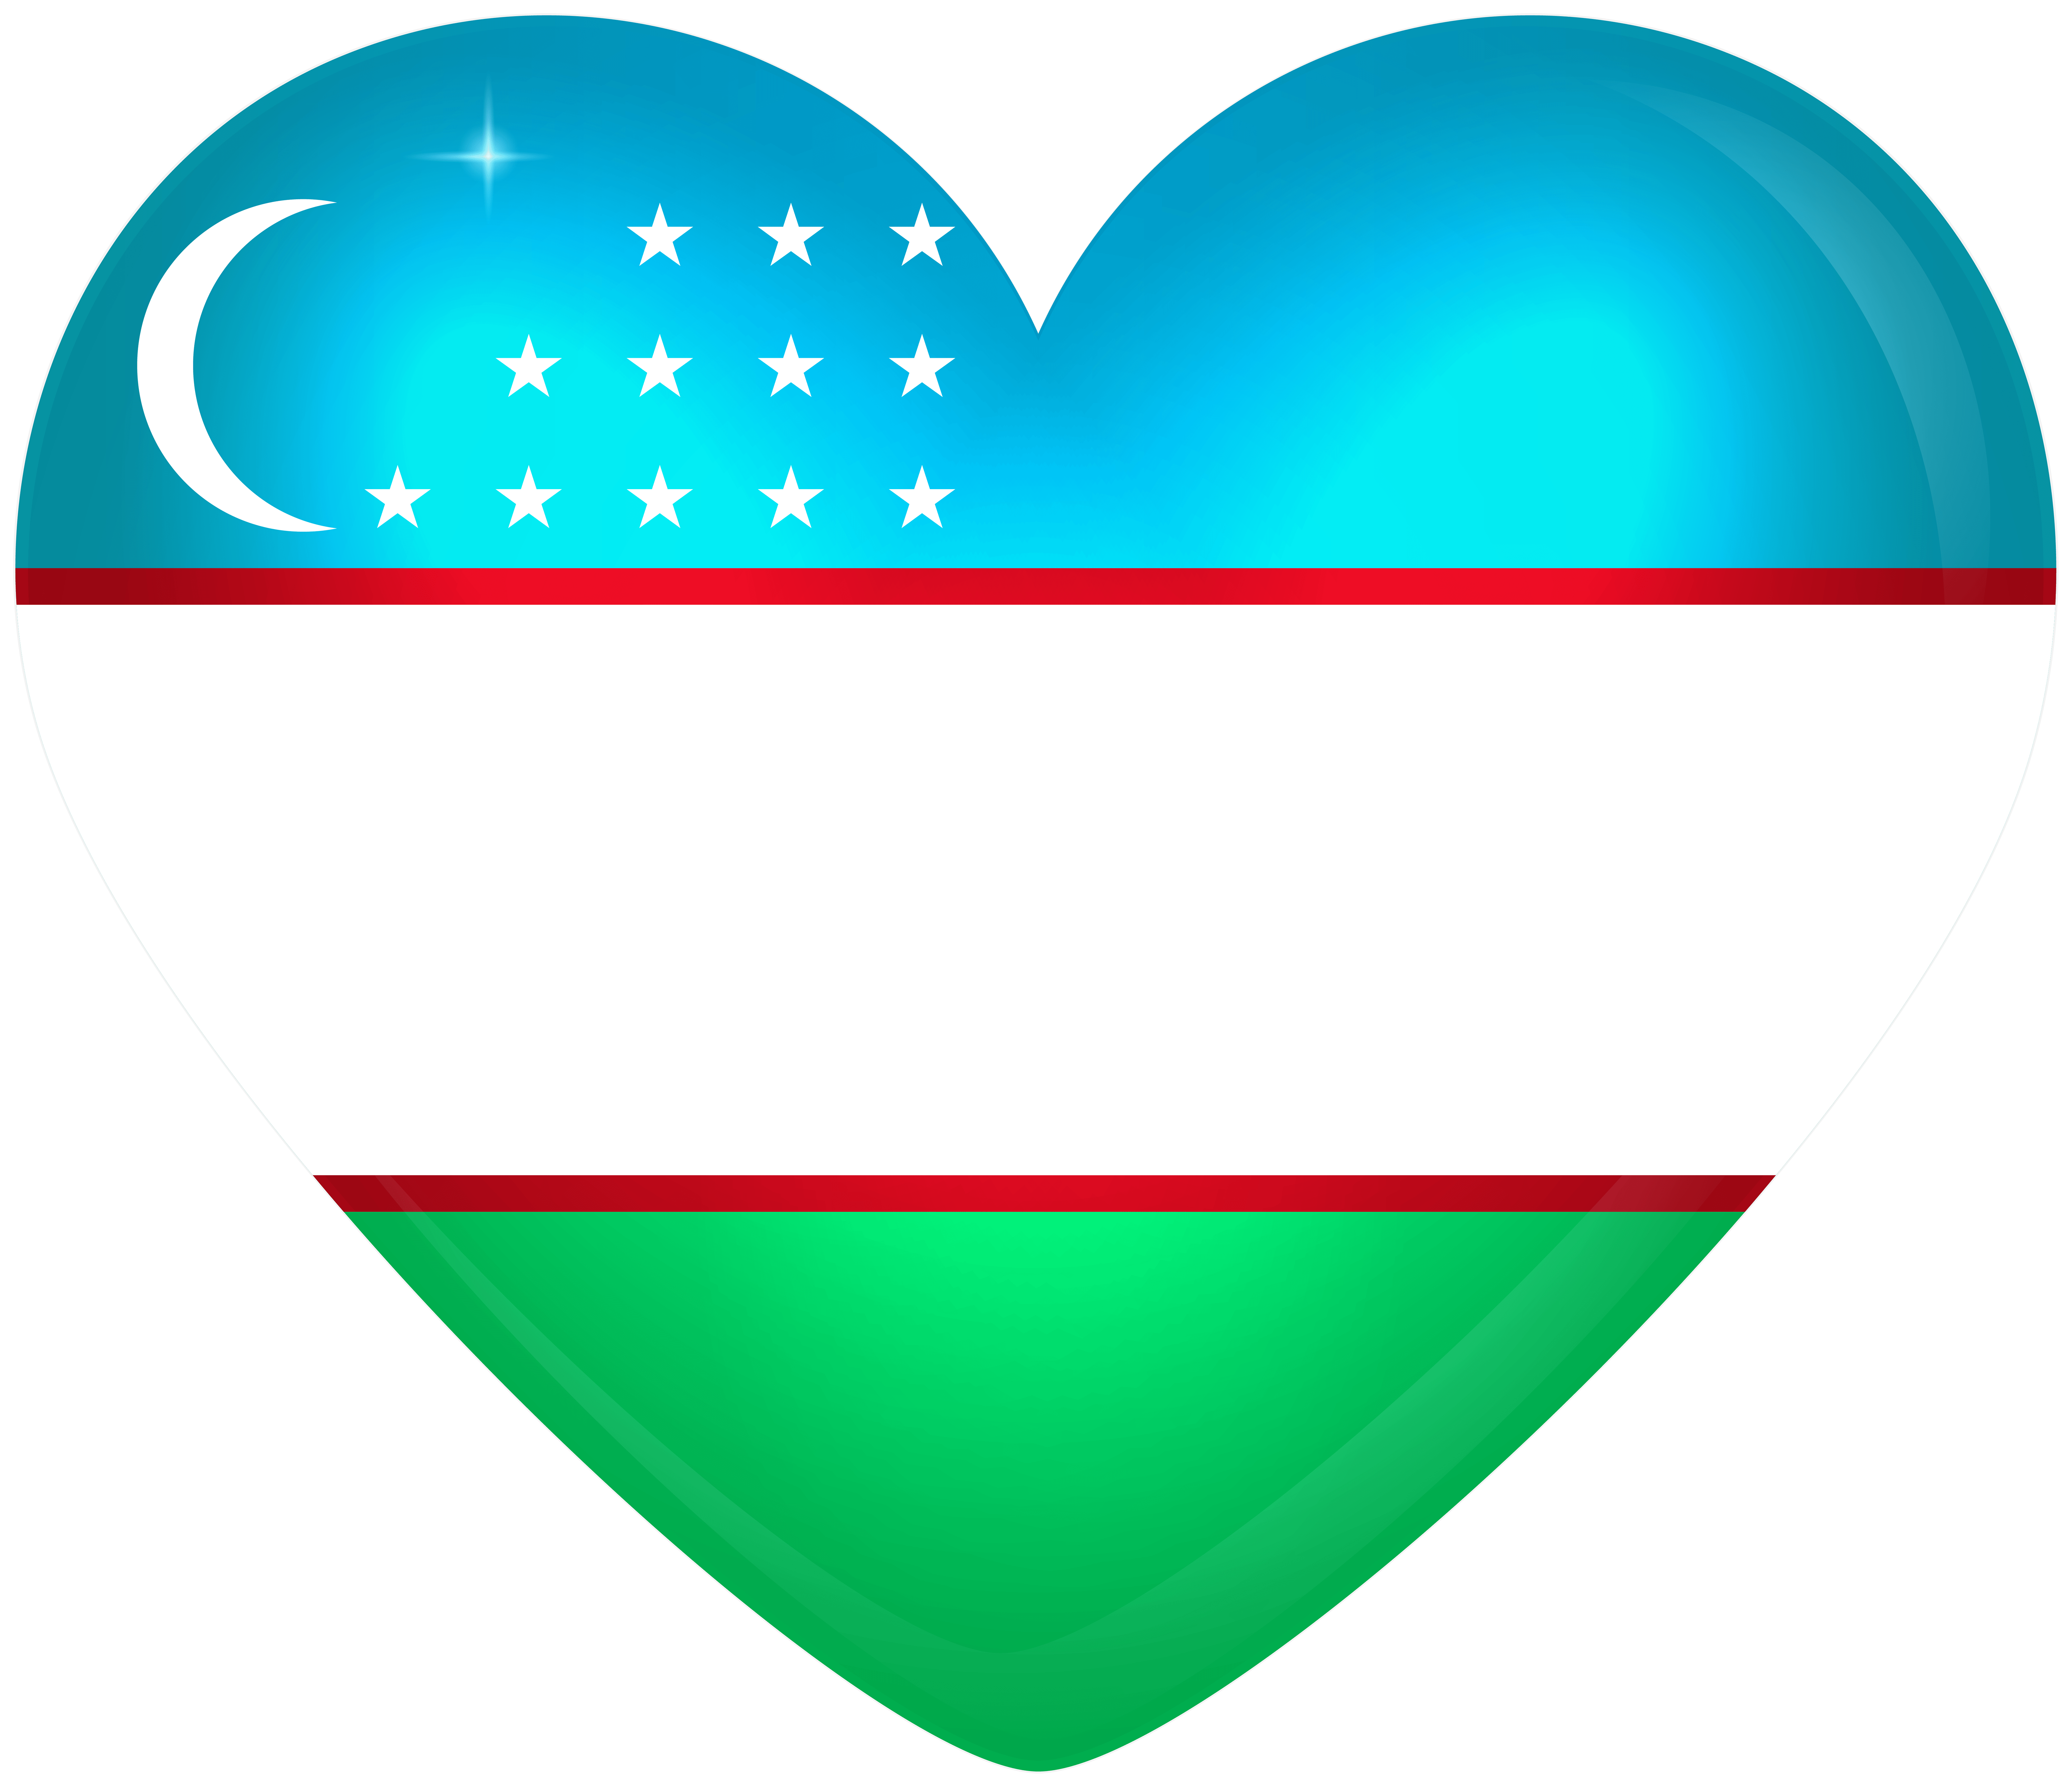 Uzbekistan Large Heart Flag | Gallery Yopriceville - High-Quality ...